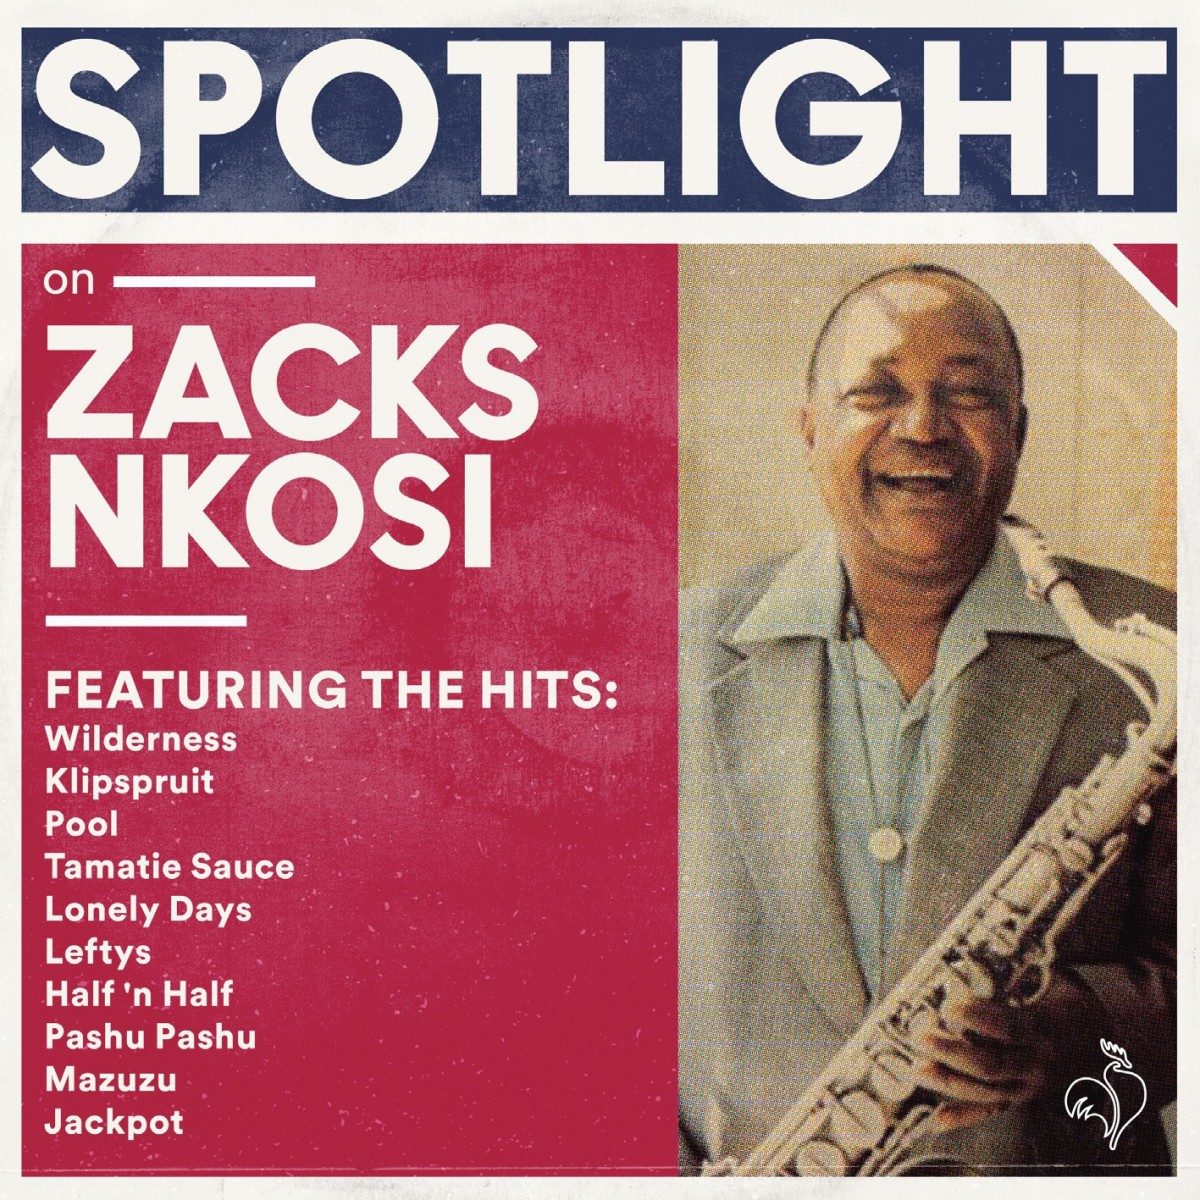 Zacks Nkosi - Spotlight On Zacks Nkosi CD - CDSPL 040